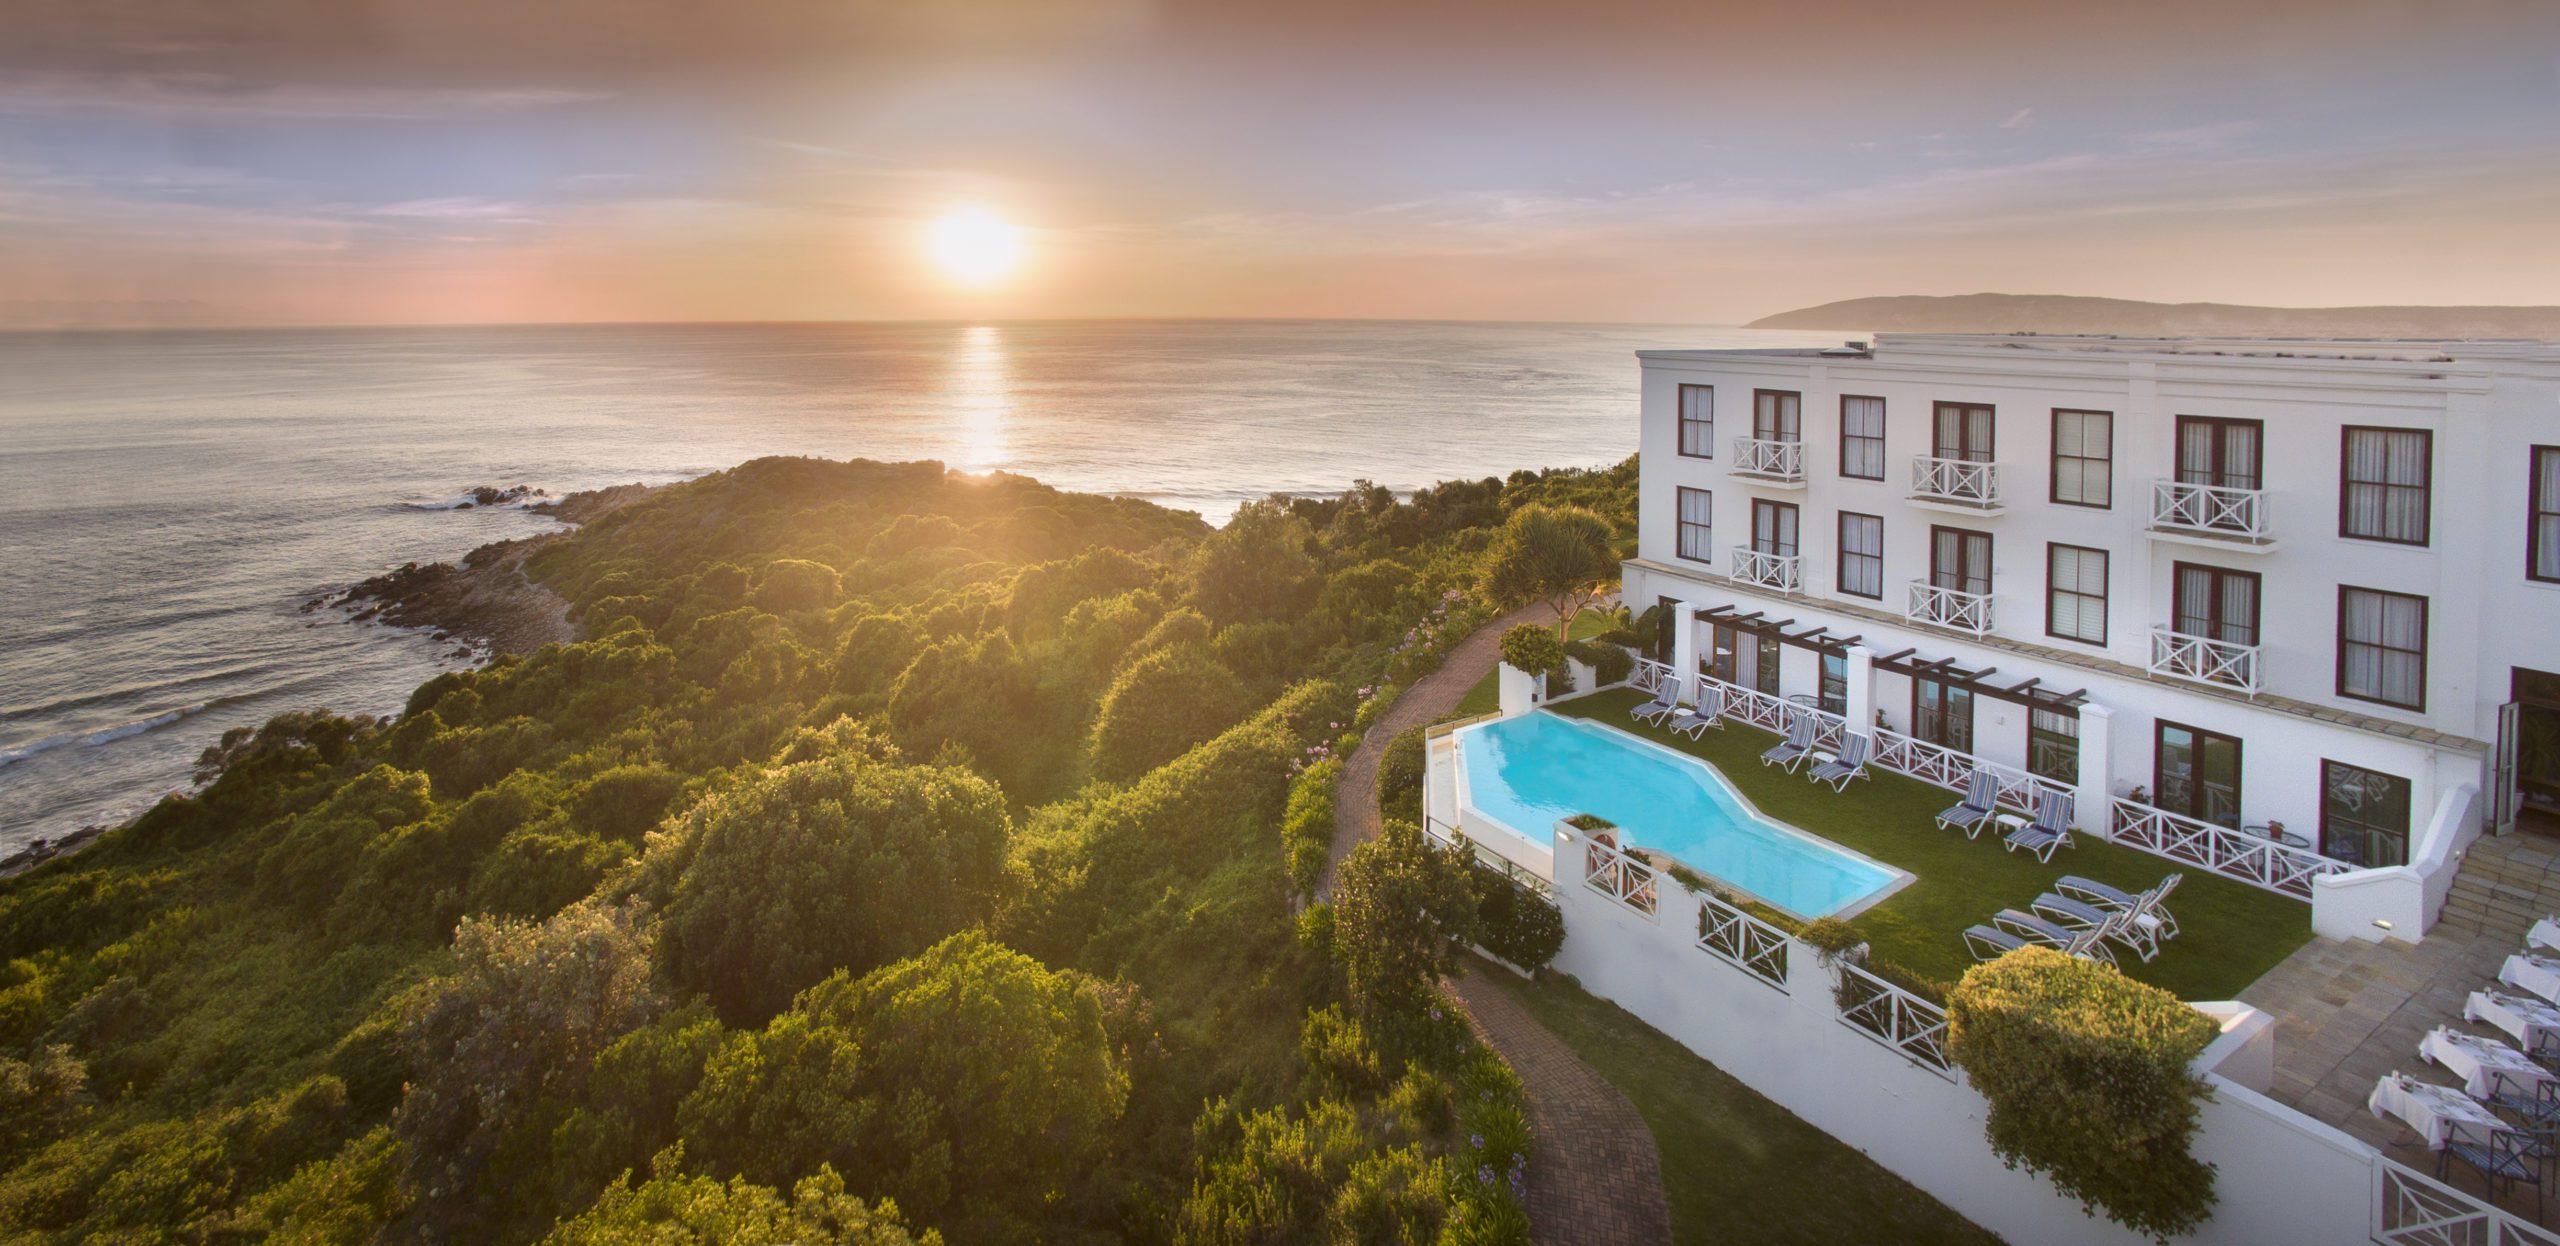 the plettenberg exterior view overlooking ocean views, lush green trees and a pretty sunset